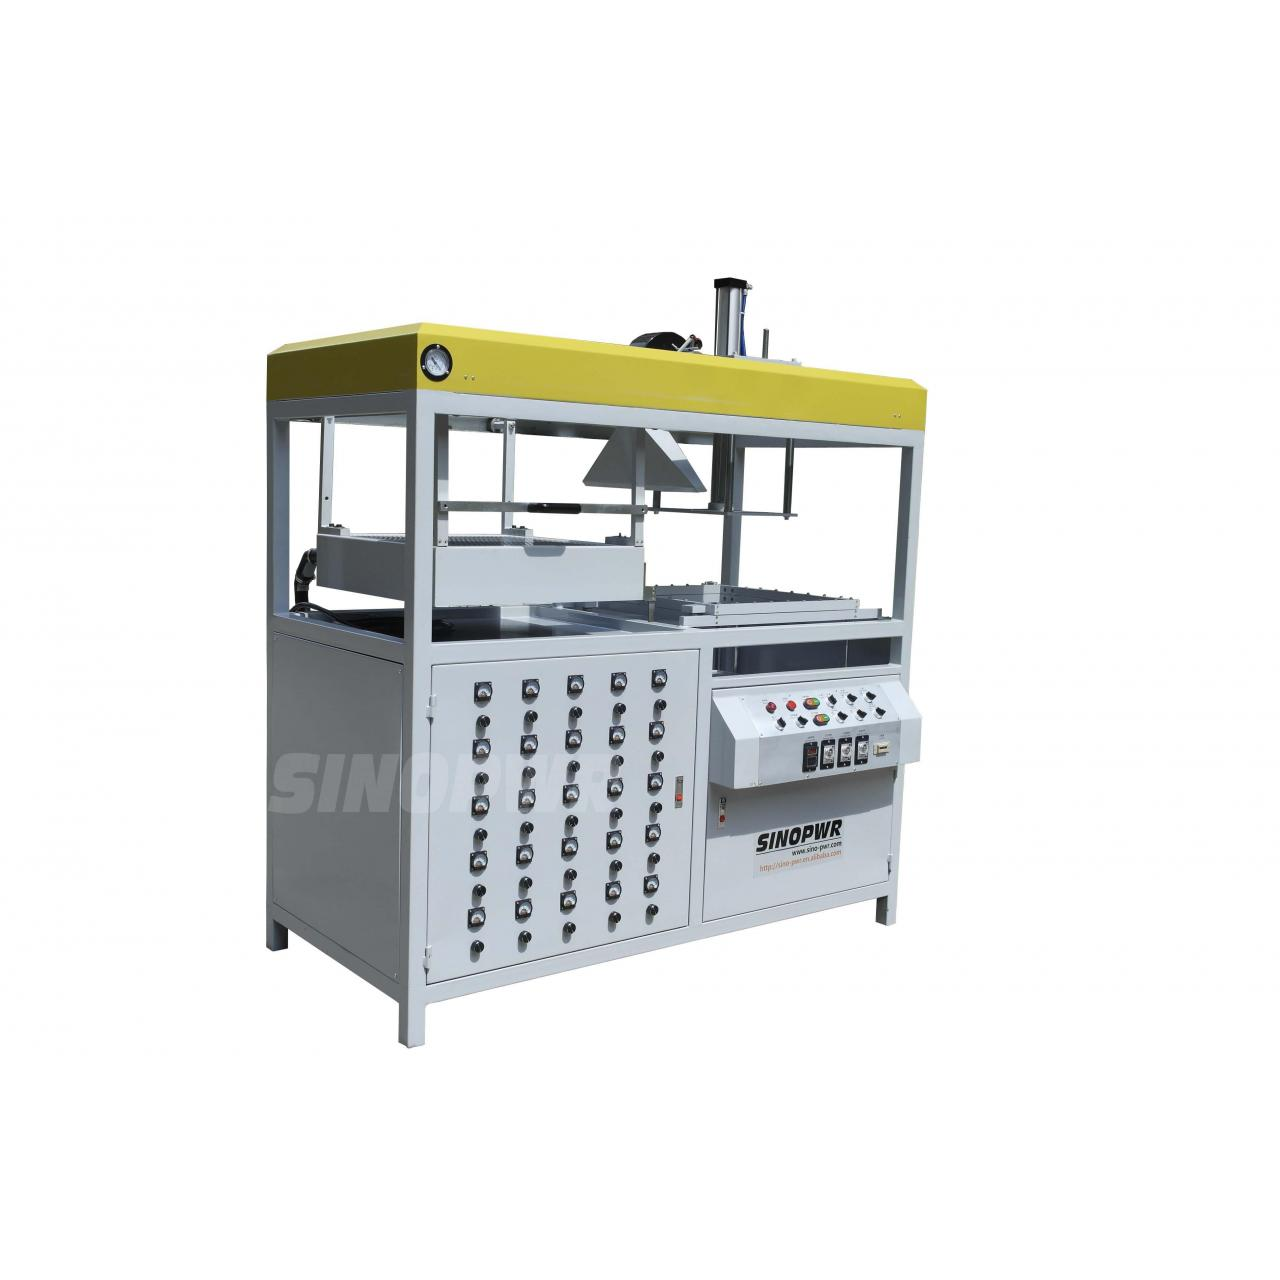 Blister clamshell shell/cylinder container forming machine